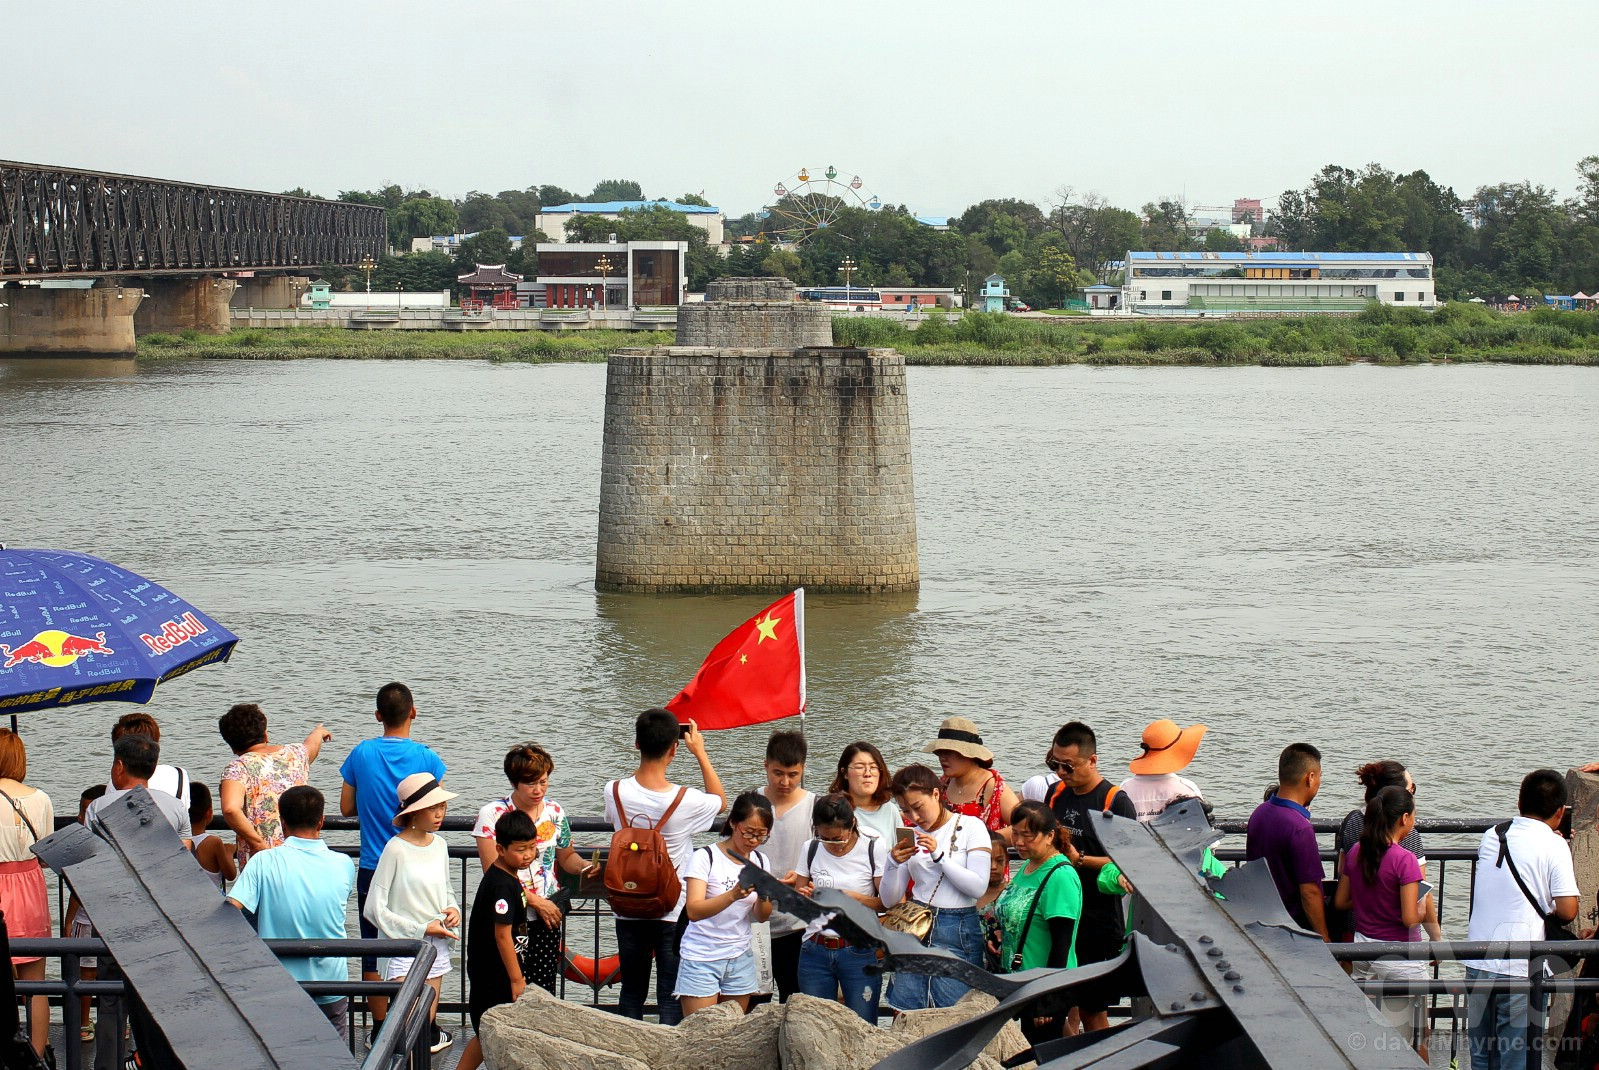 At the end of the Broken Bridge of the Yalu River in Dandong, Liaoning province, China. August 13, 2017.